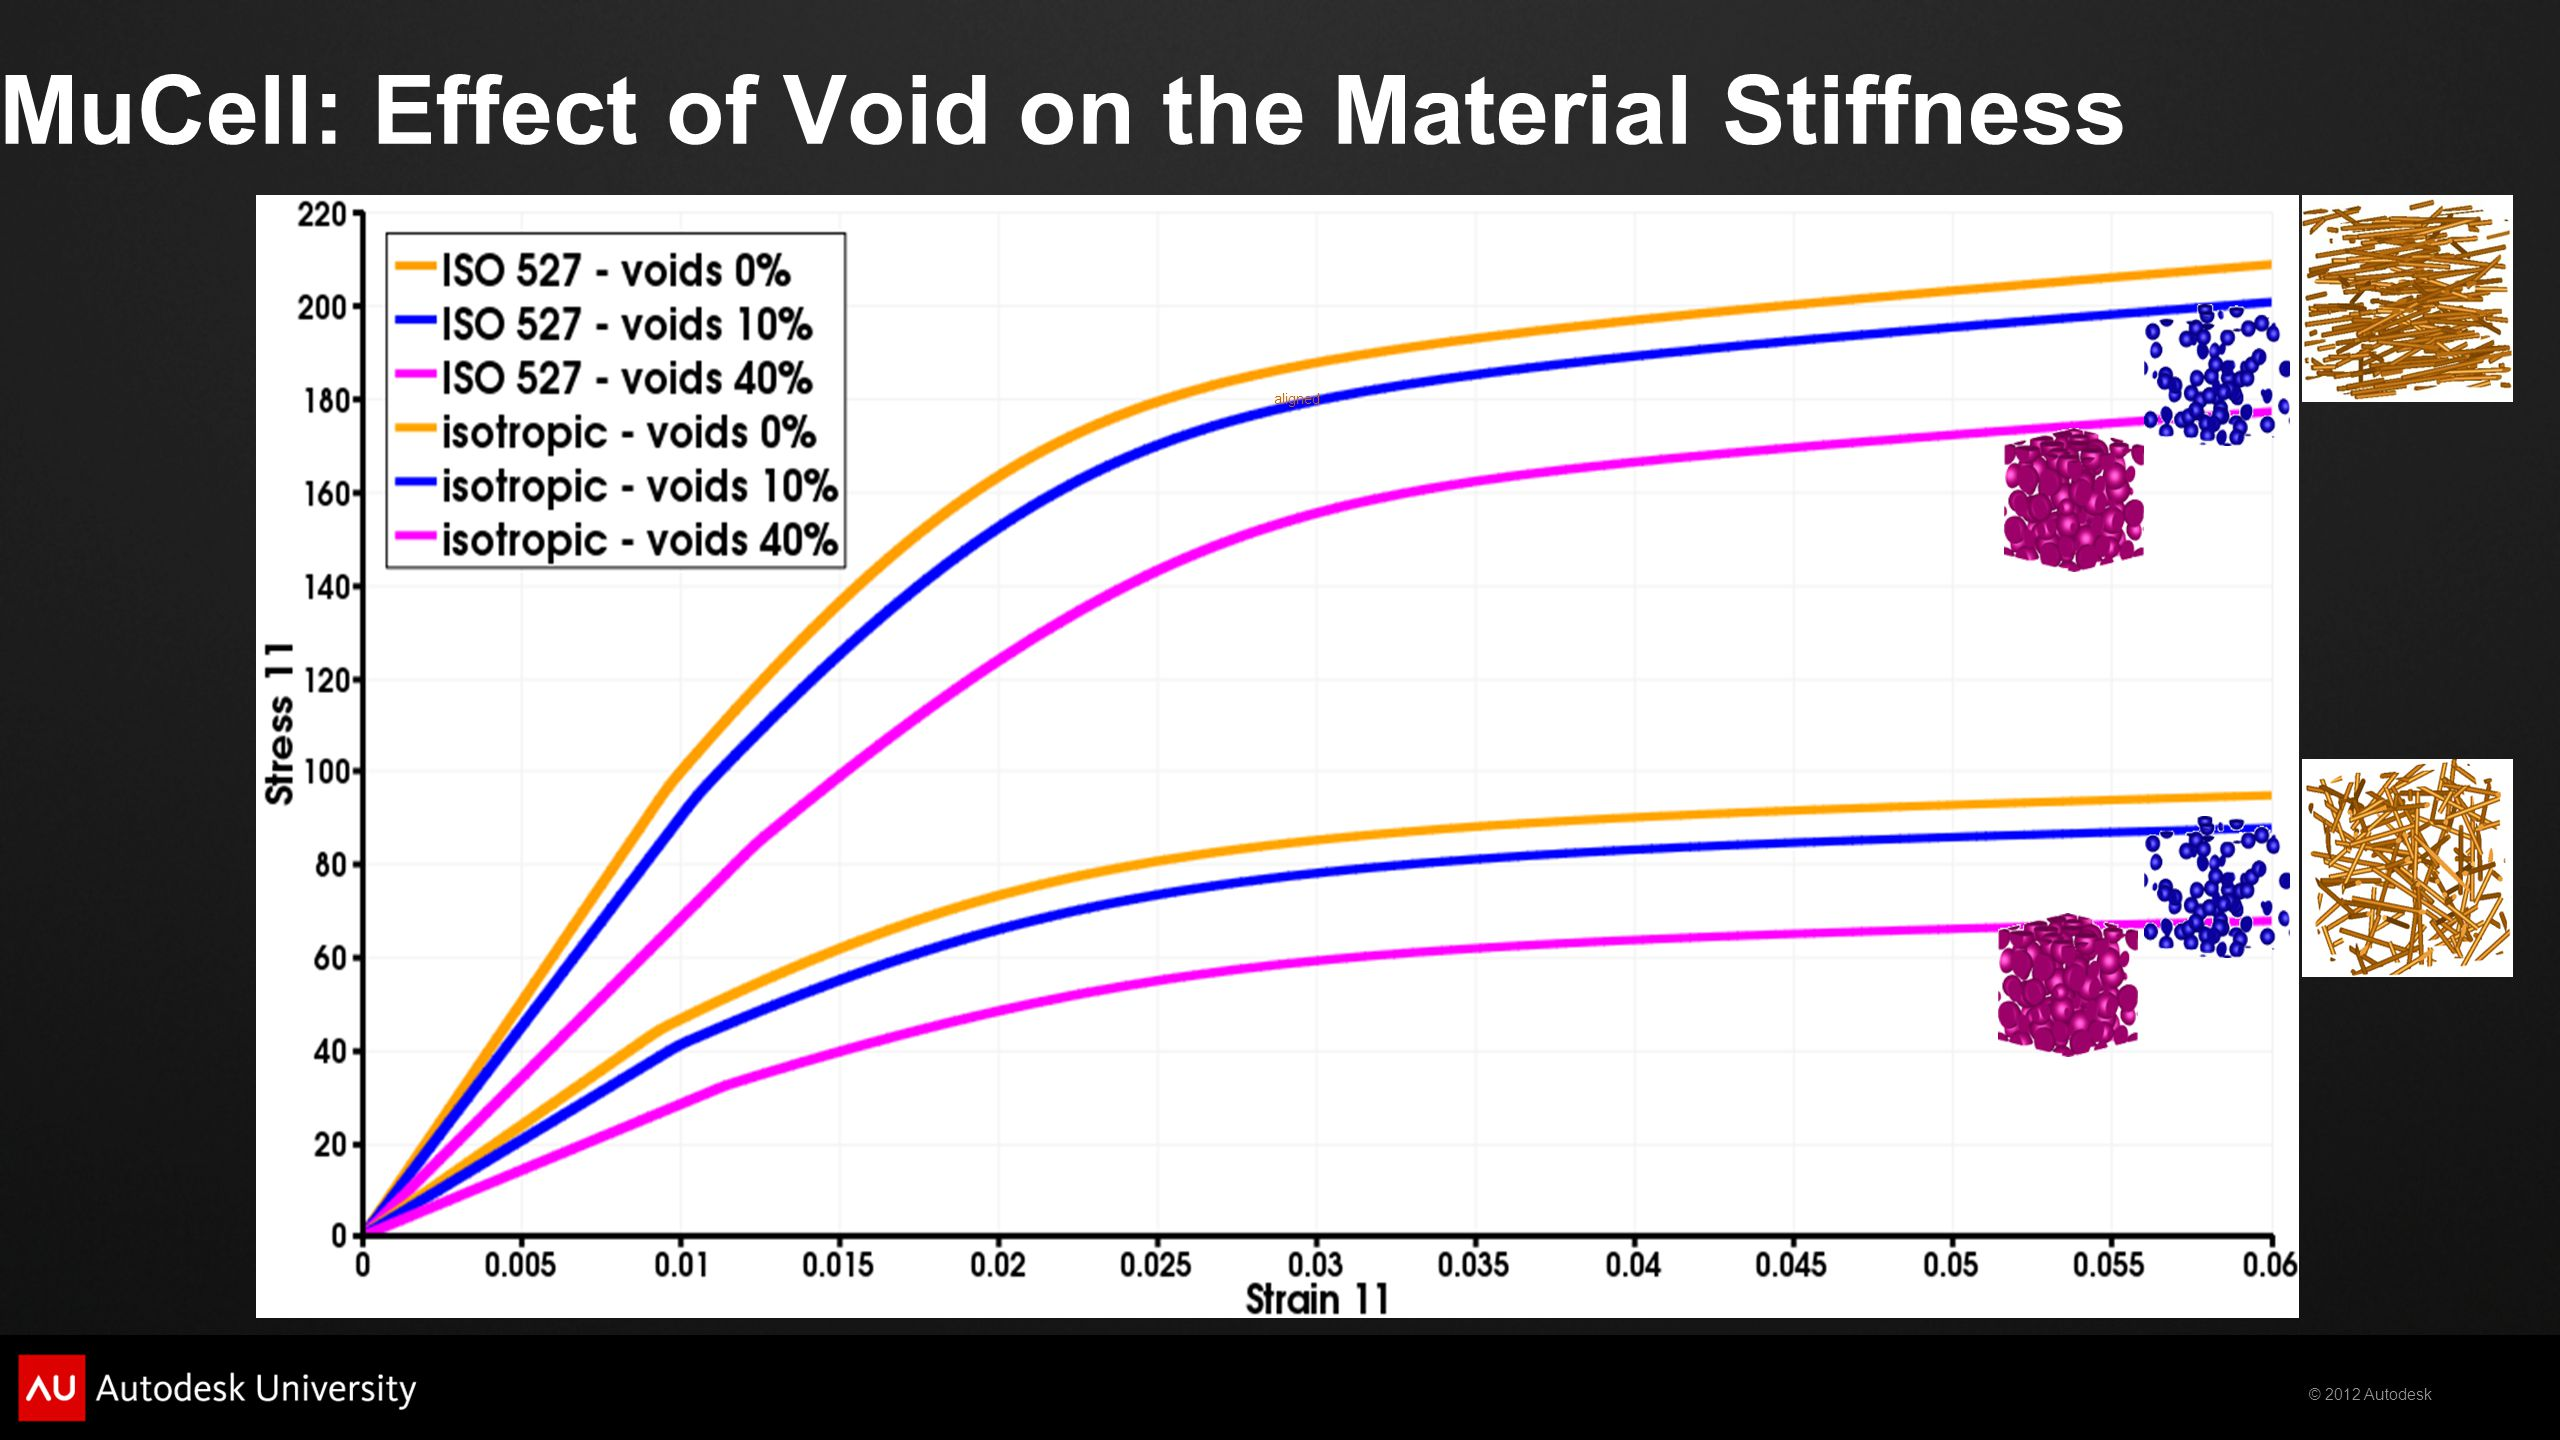 MuCell: Effect of Void on the Material Stiffness